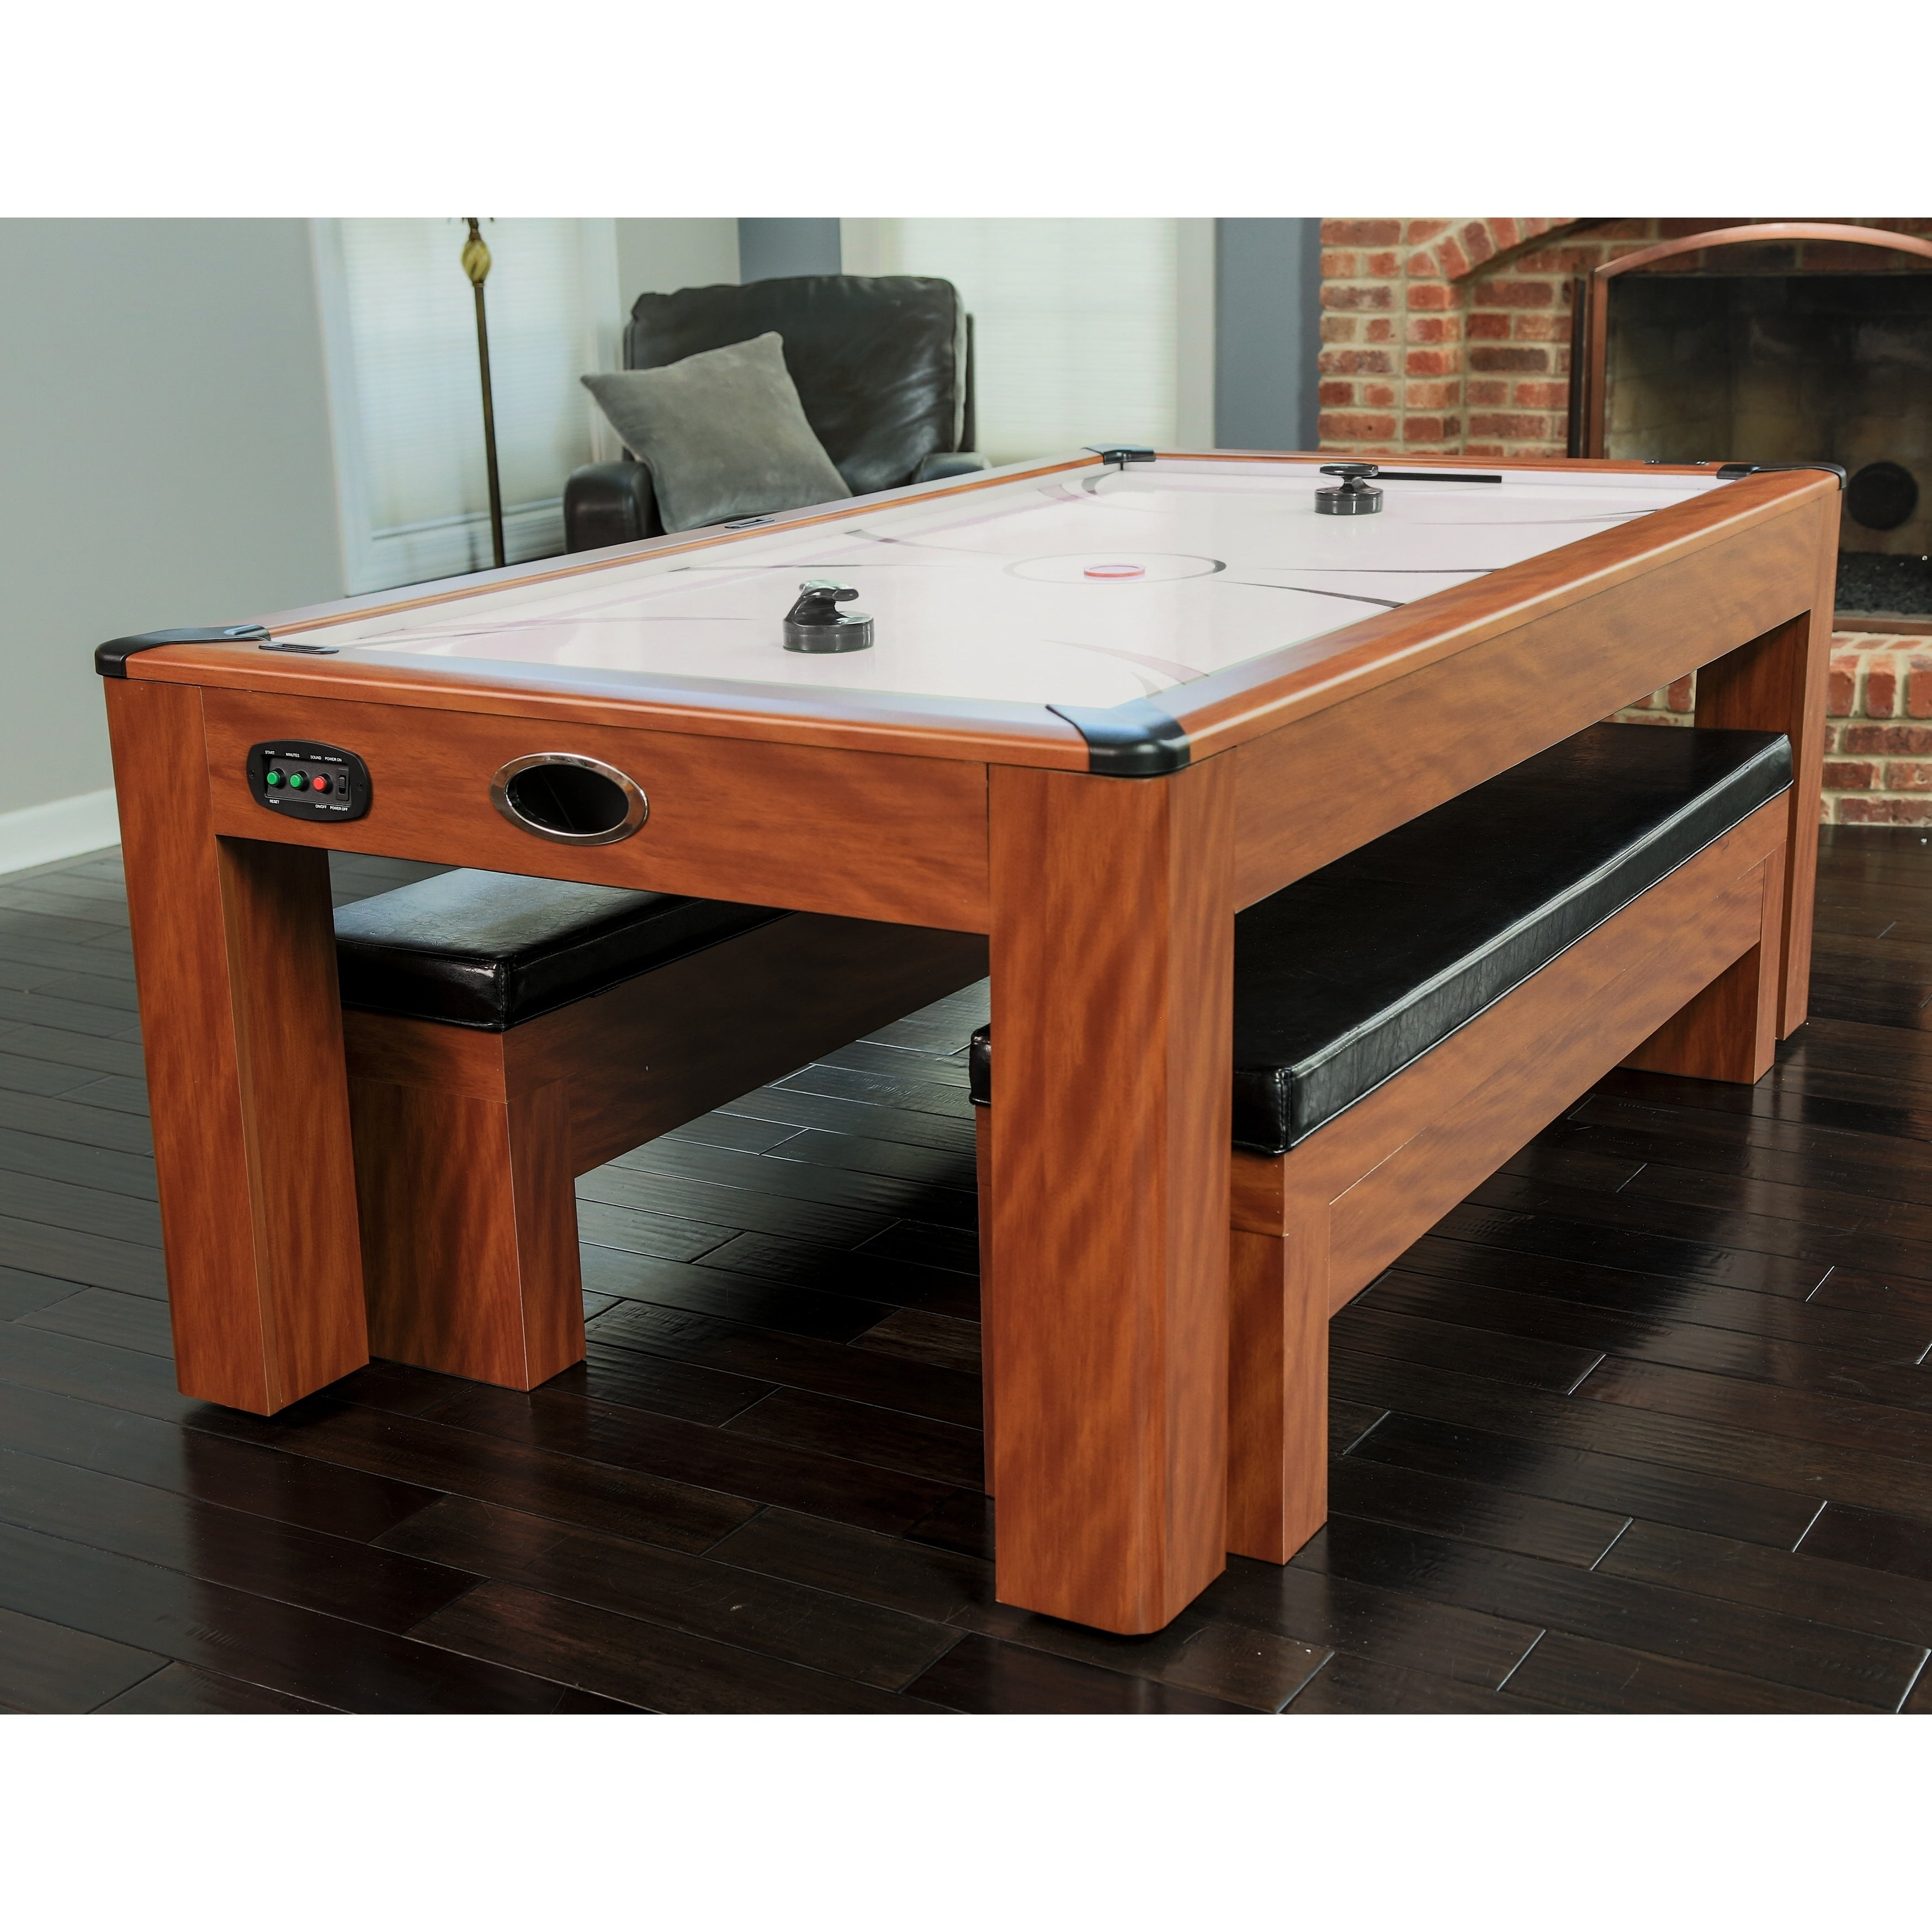 Incredible Sherwood 7 Ft Air Hockey Table With Benches Cherry Pdpeps Interior Chair Design Pdpepsorg